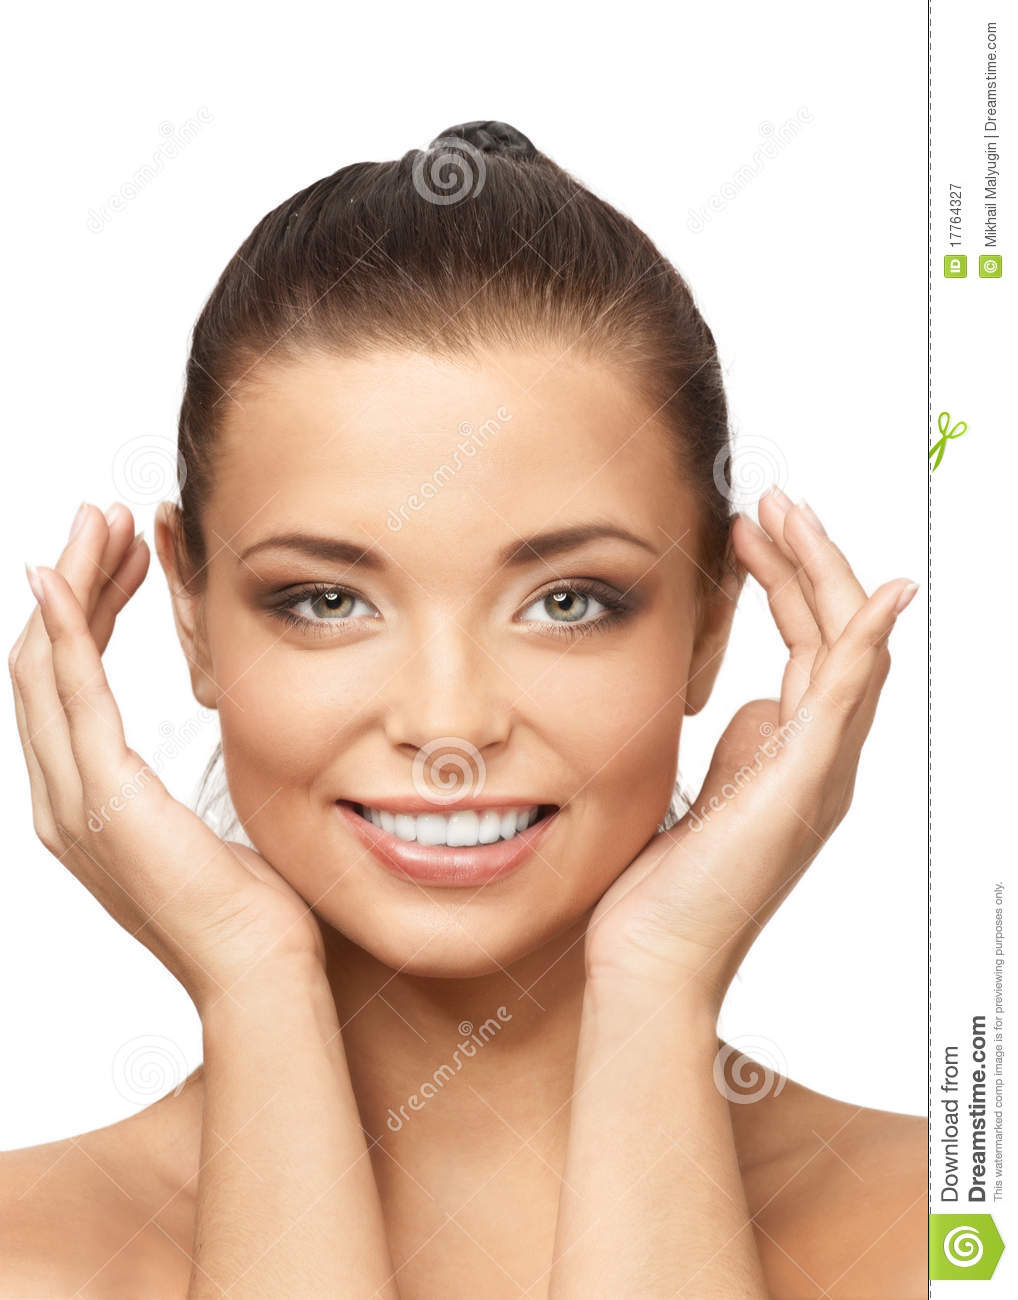 Smiling Beautiful Woman With Perfect Skin Royalty Free